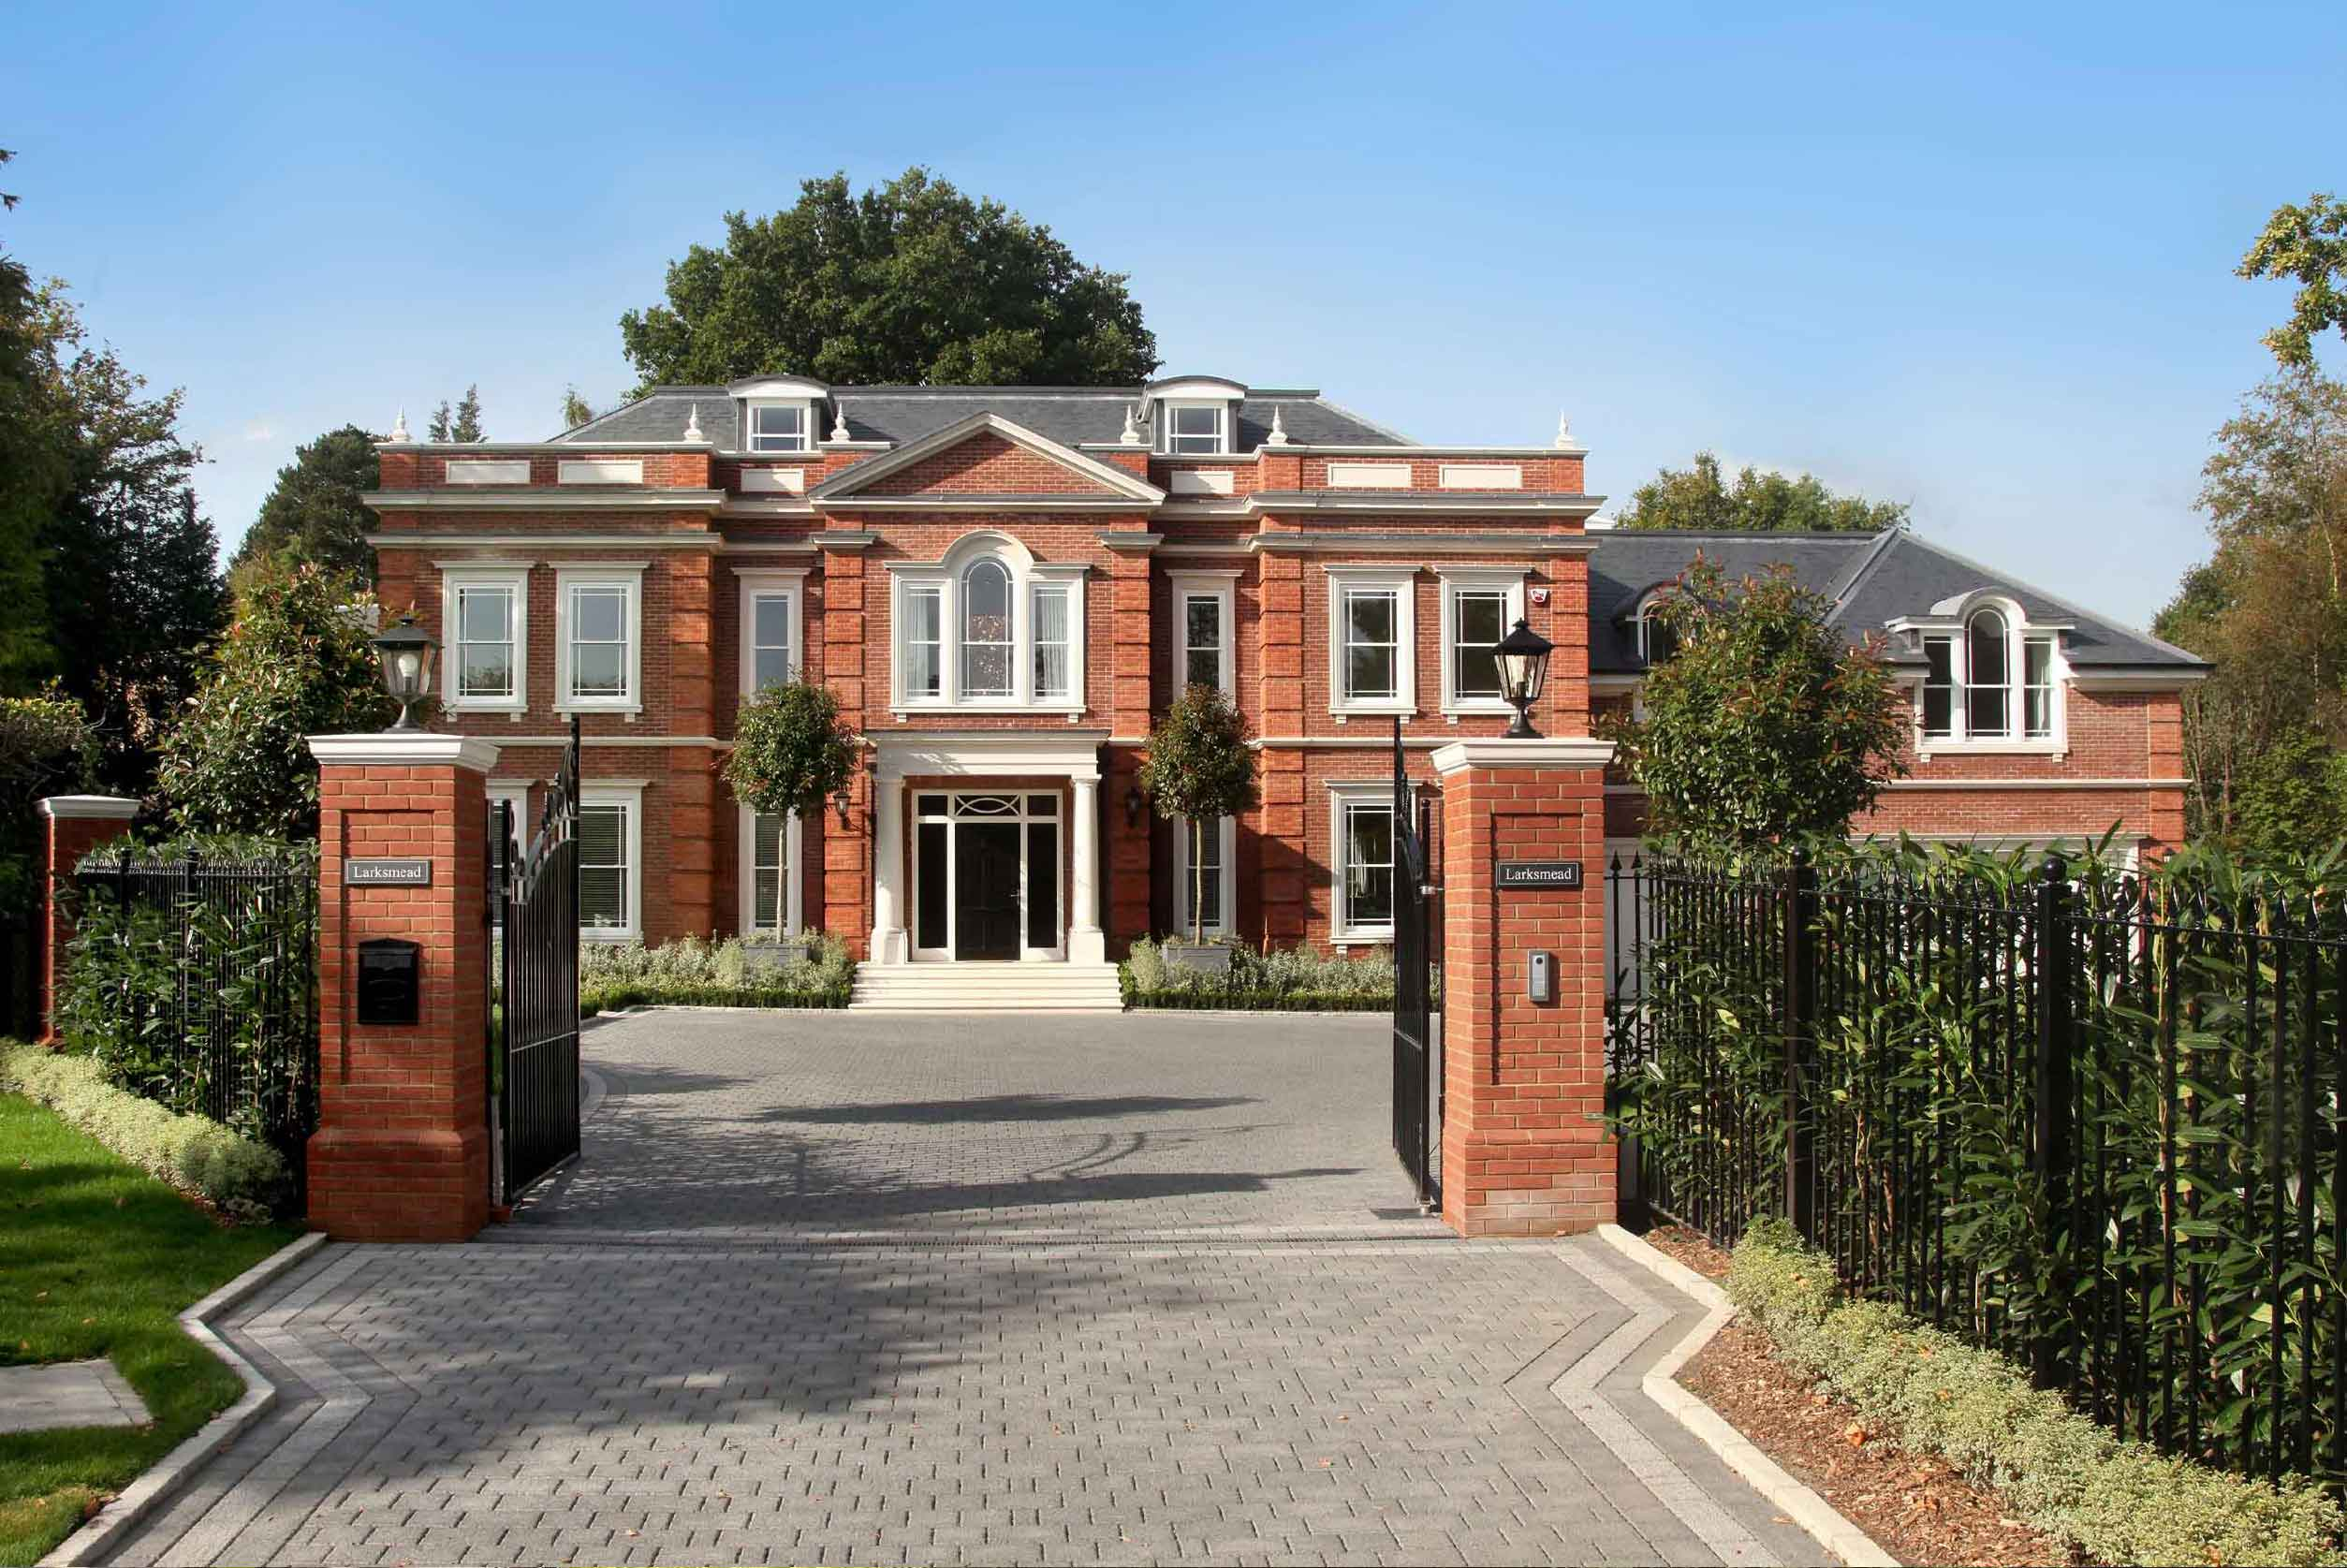 Larksmead is a brand-new luxury home on nearly an acre of private grounds that back directly onto another famous English golf course, Sunningdale